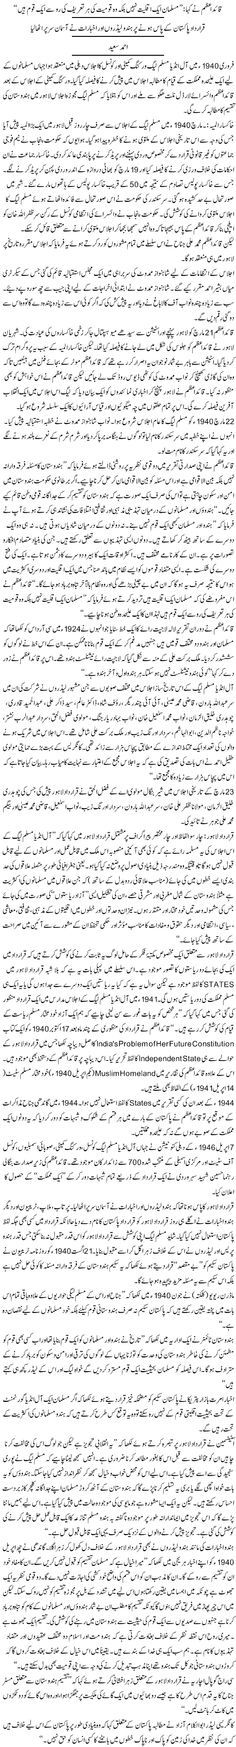 23 March 1940 Pakistan Day Urdu Speech